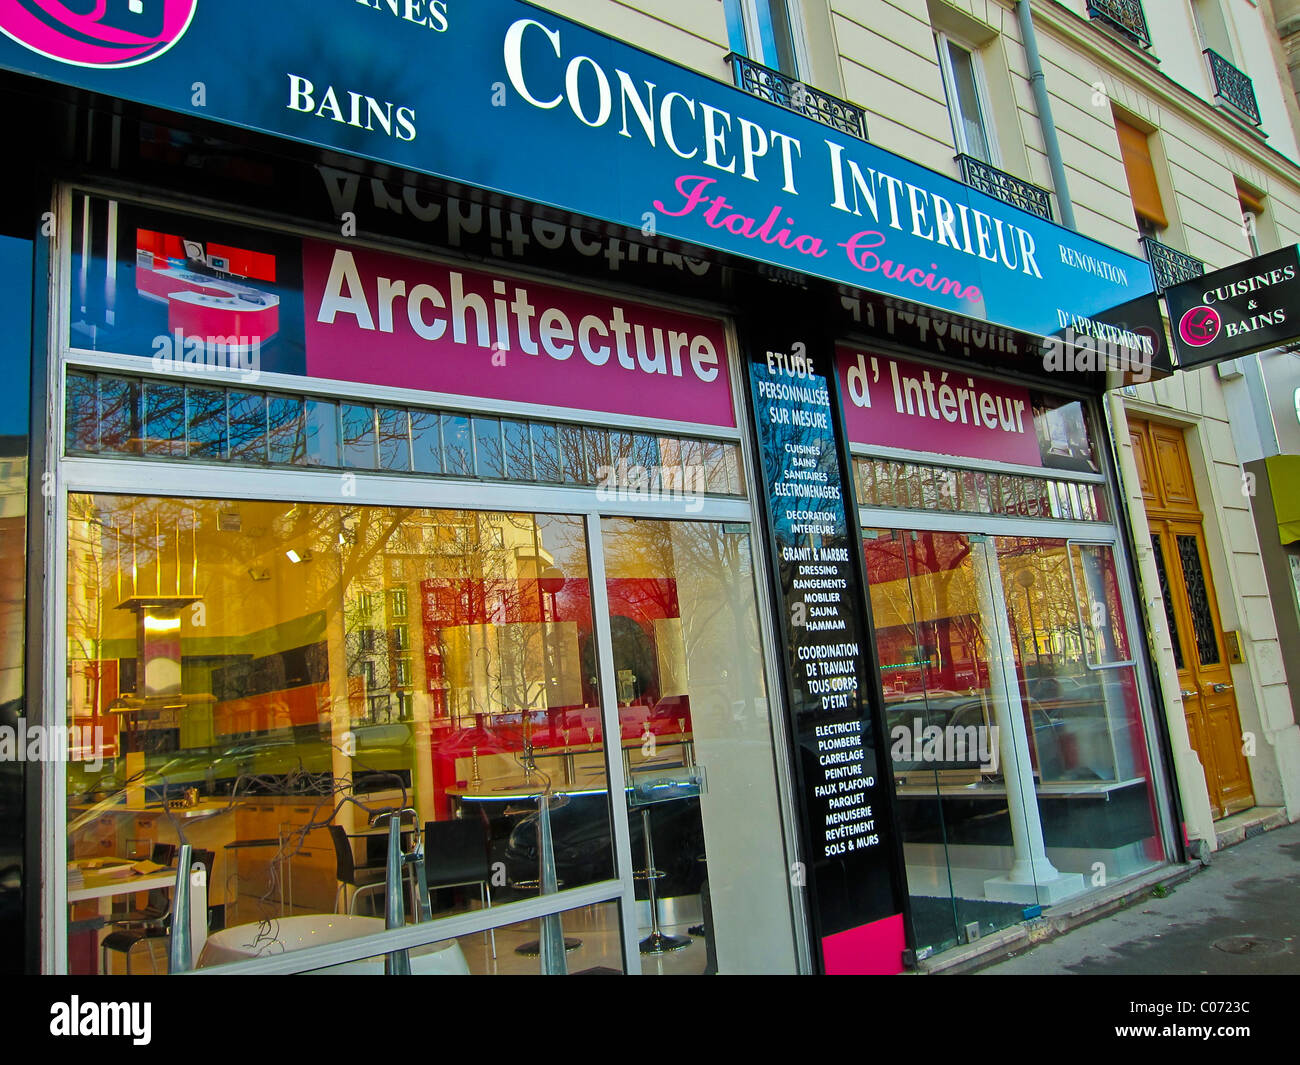 https://c8.alamy.com/comp/C0723C/paris-france-modern-interior-design-concept-interieur-shop-front-window-C0723C.jpg